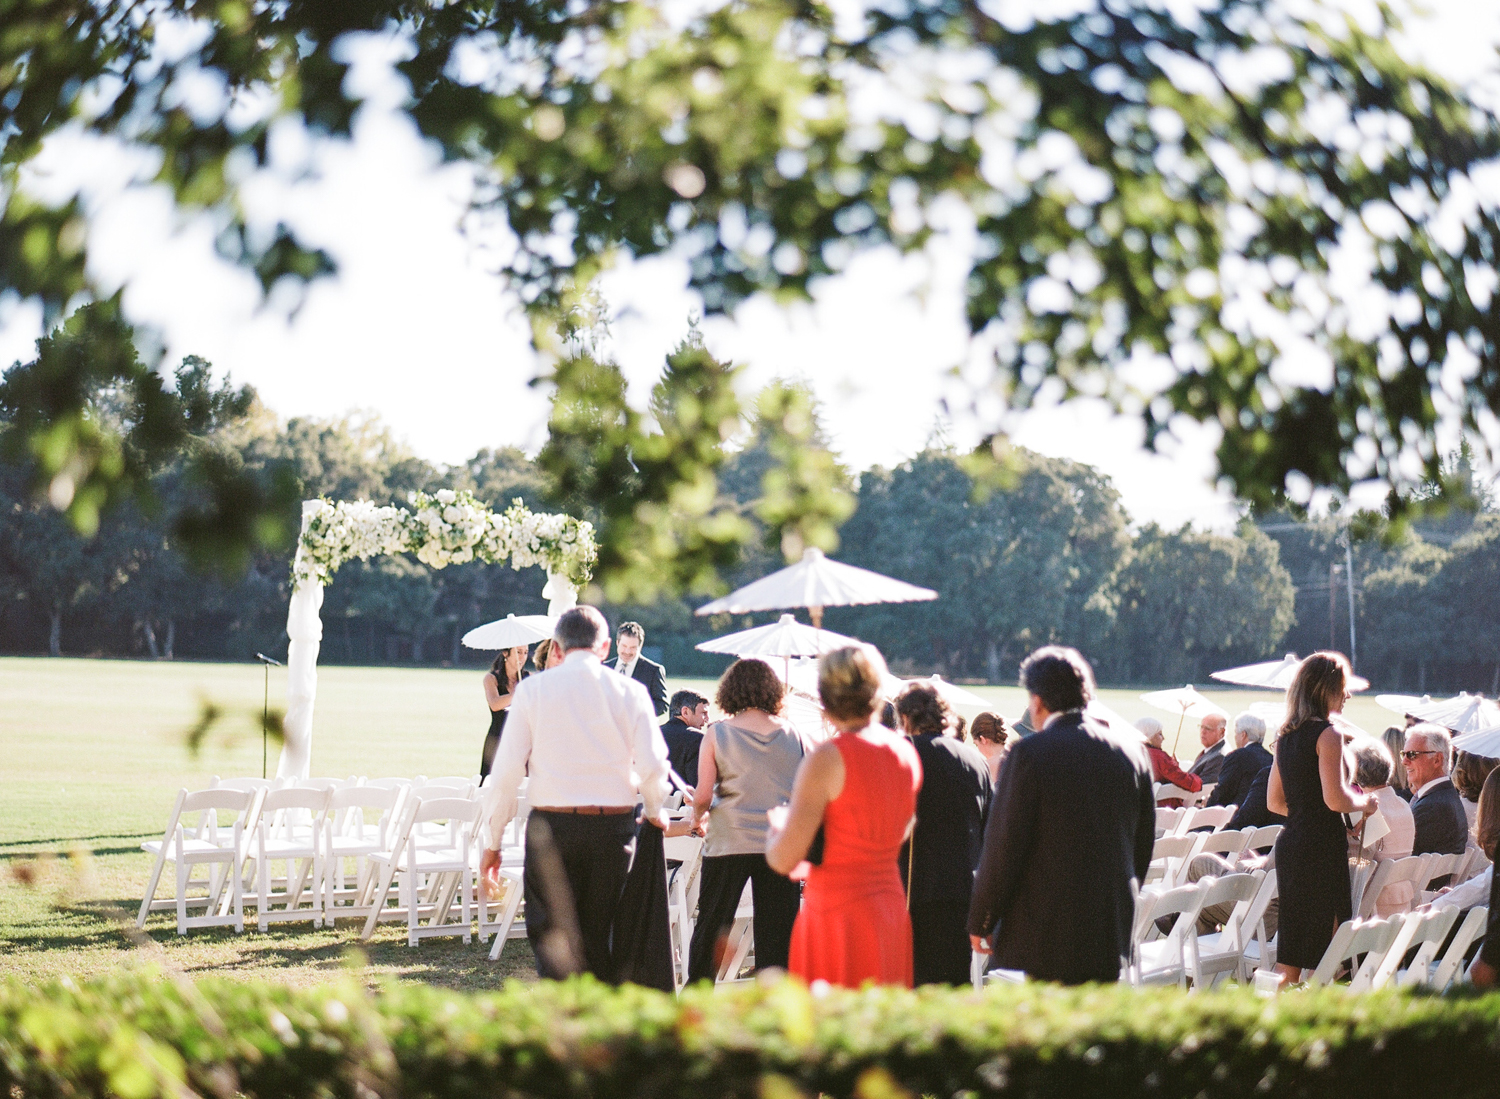 Guests arrive to the open outdoor ceremony space; photo by Sylvie Gil